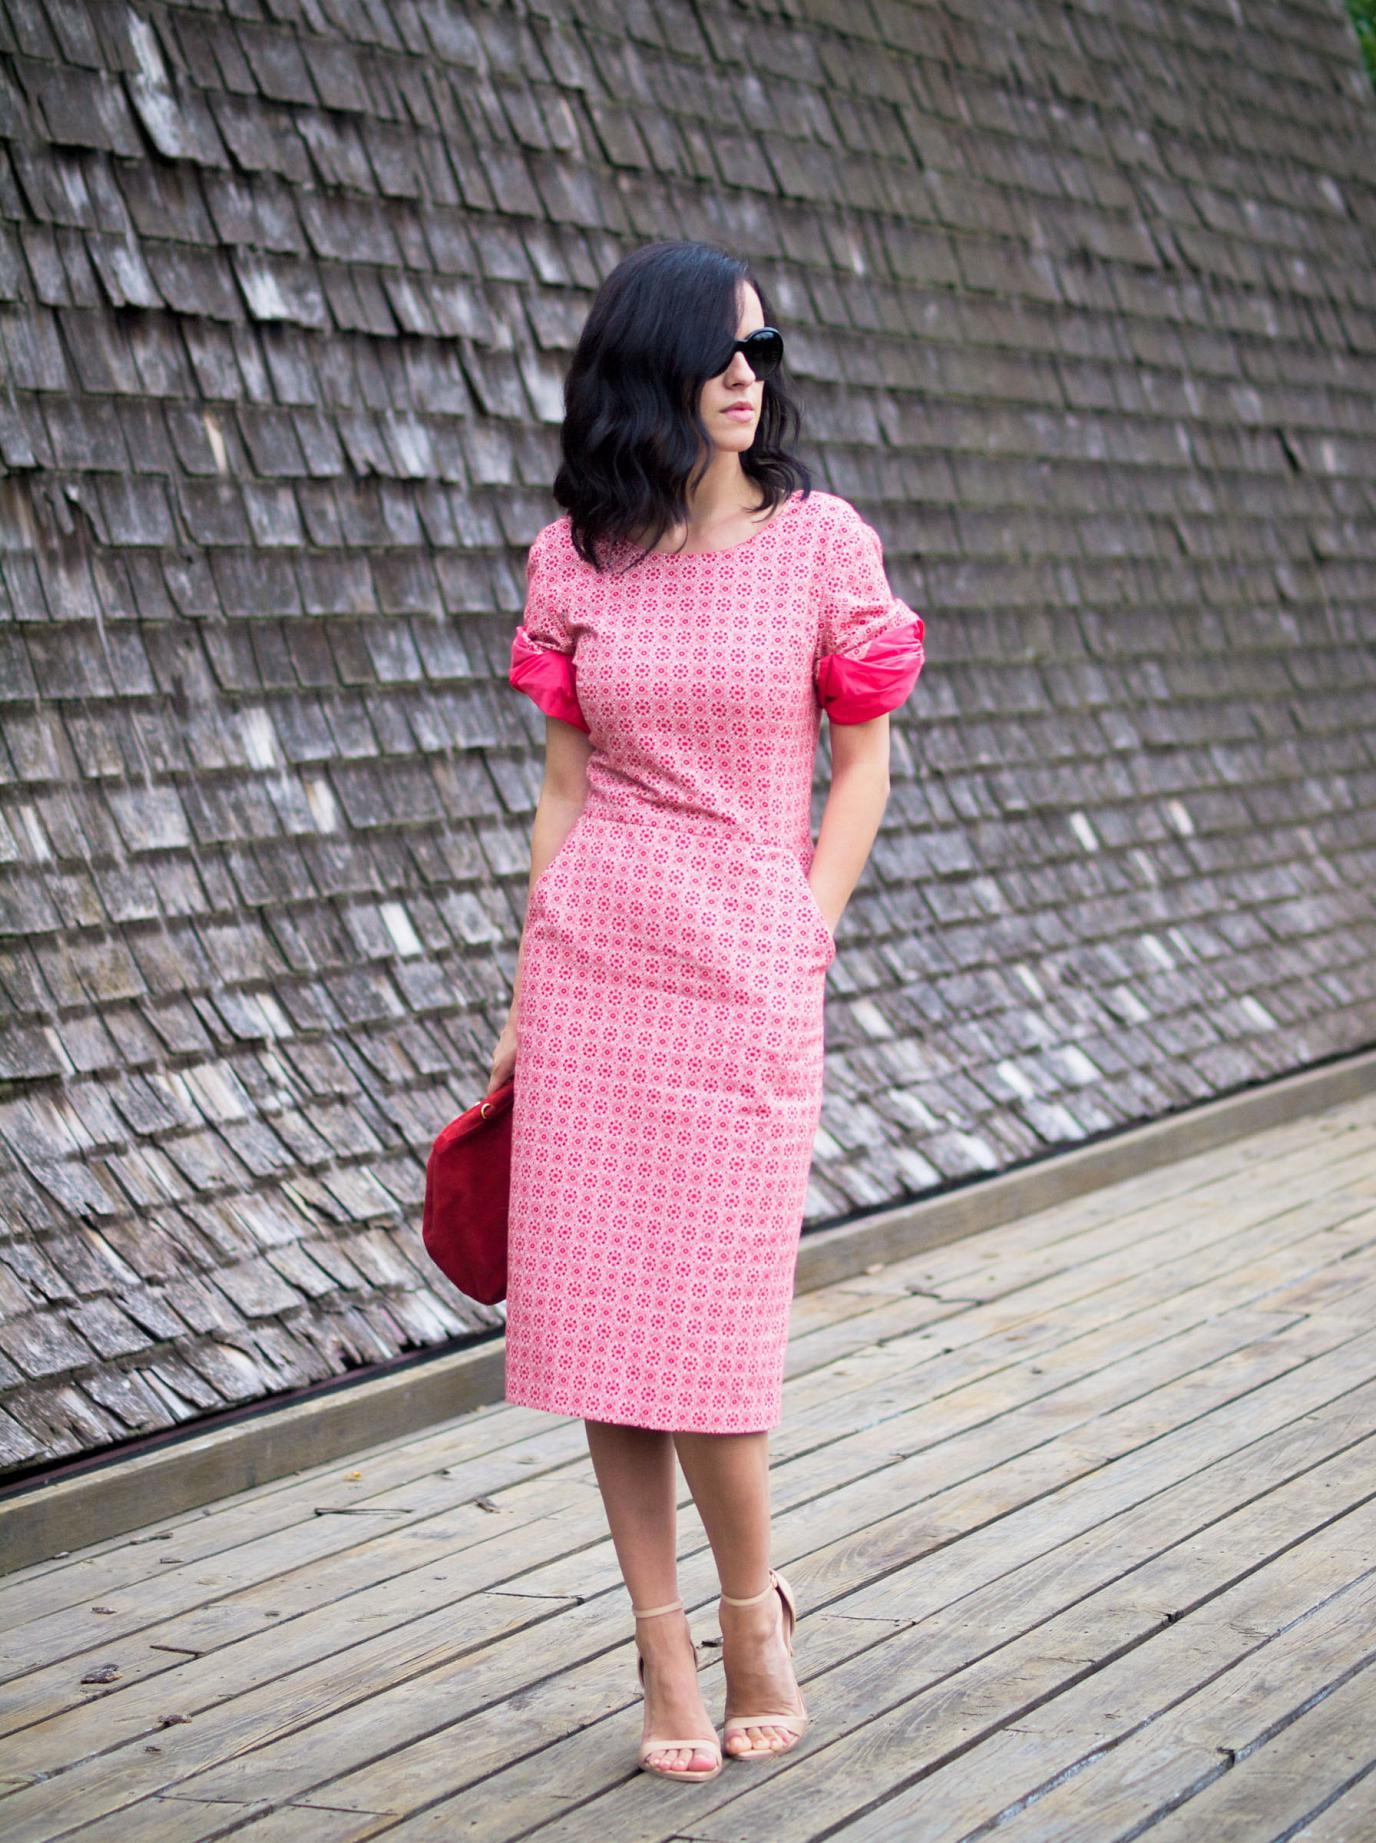 What To Wear With Pink Dresses 2021